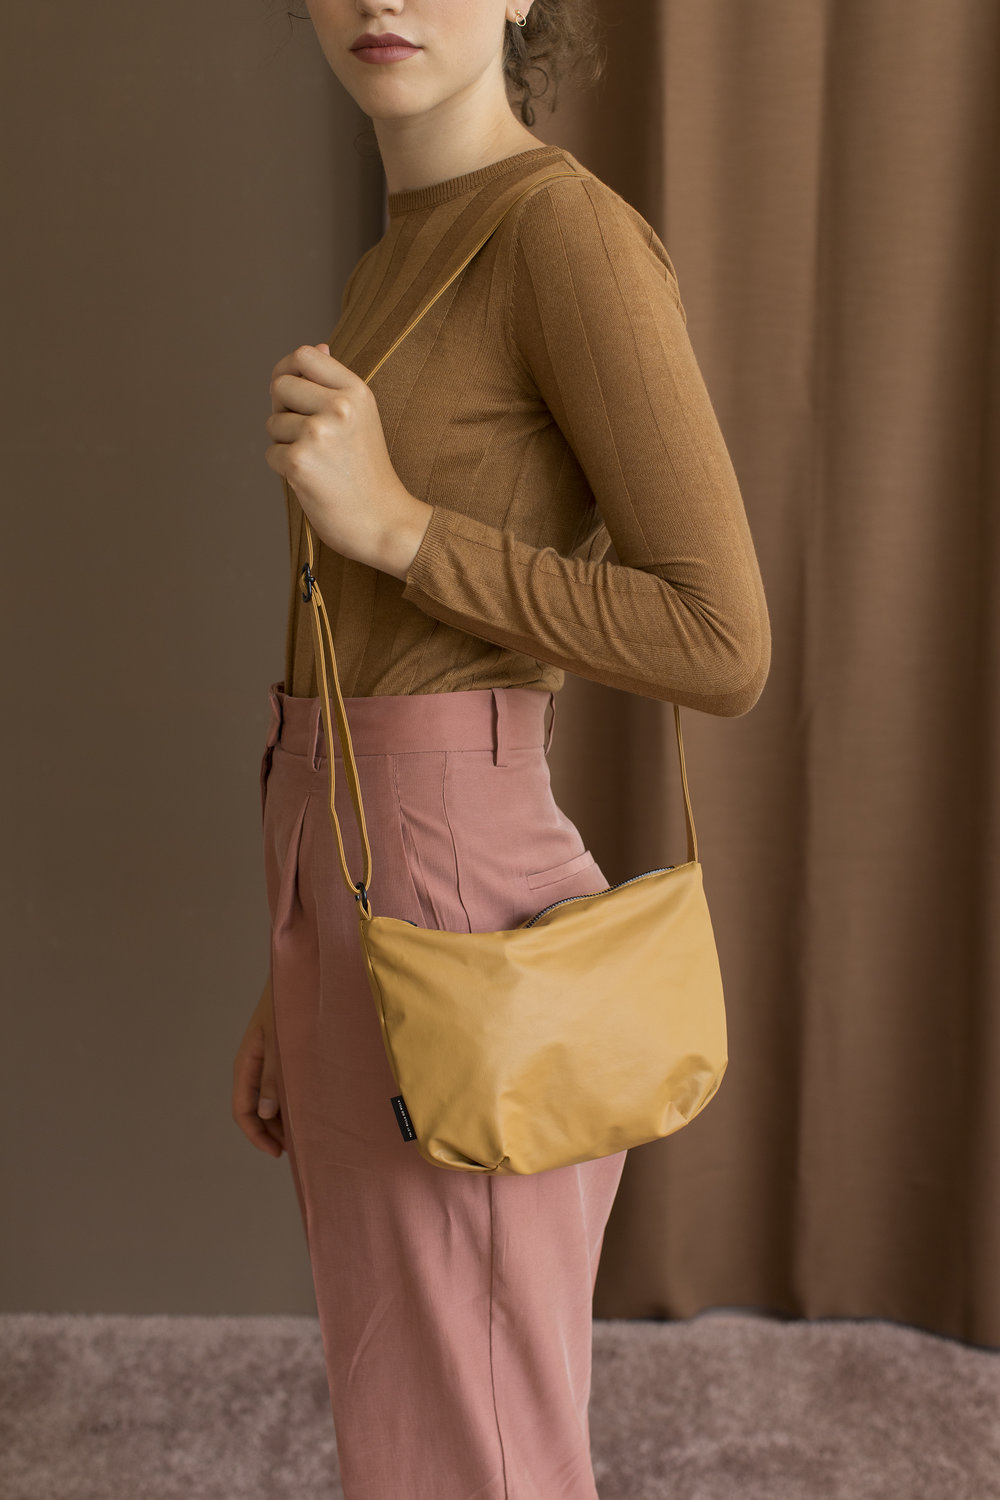 Tinne+Mia - cross body feel good baggy - almond.jpg